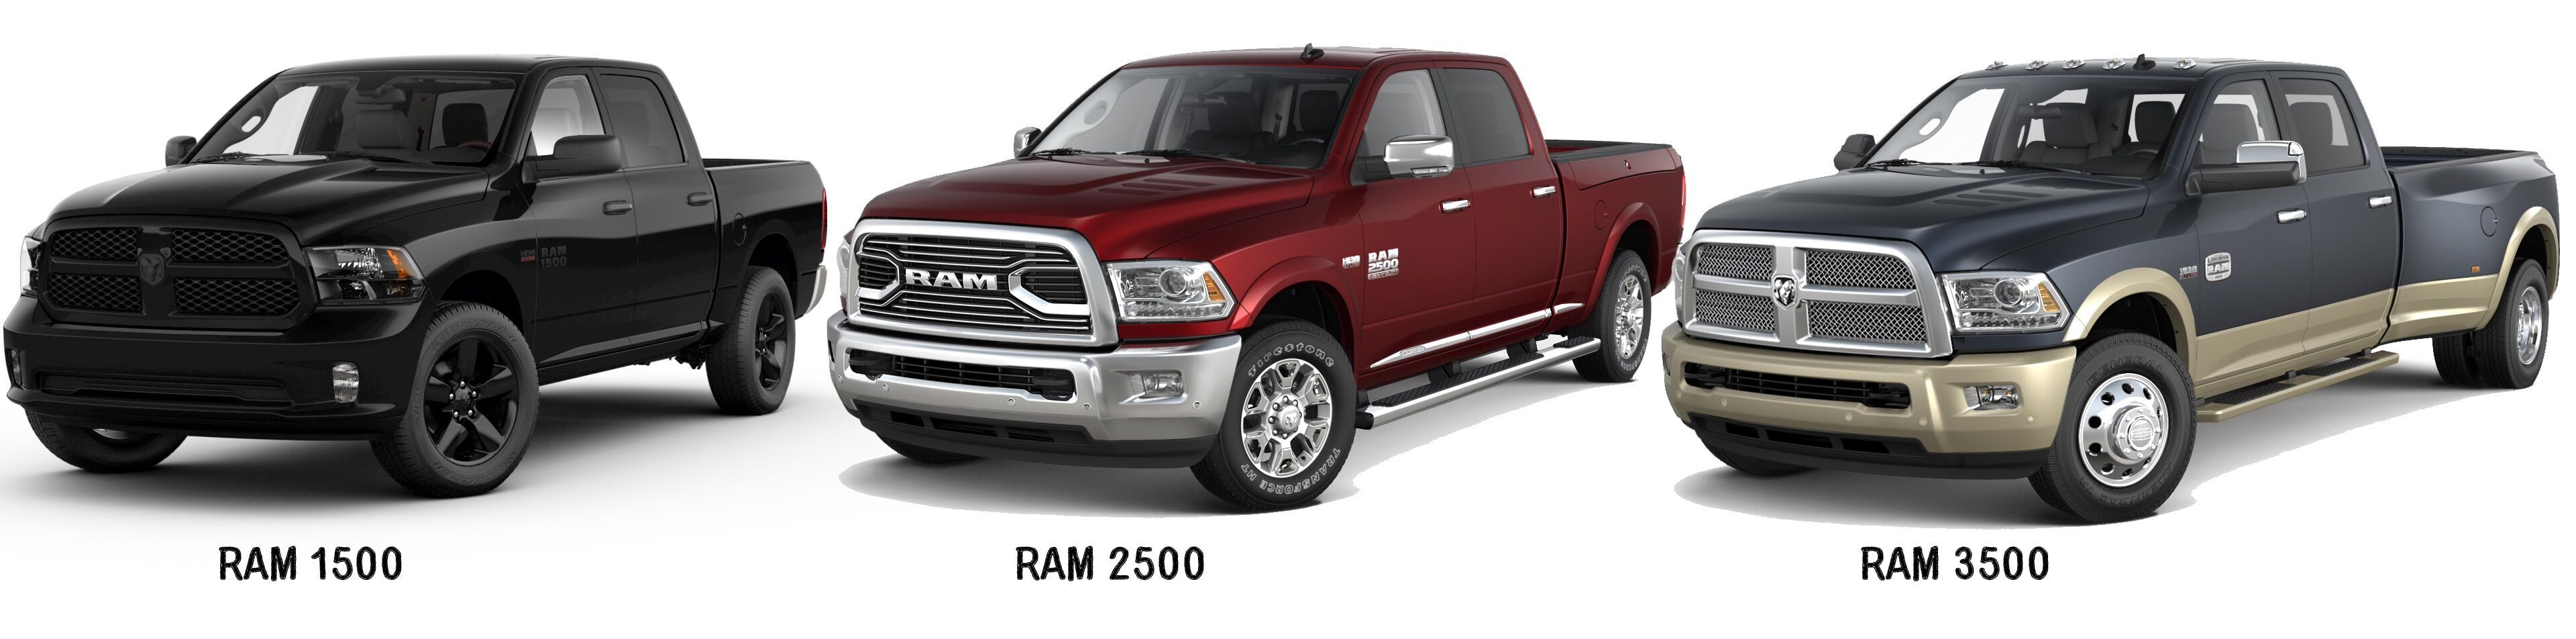 ram 1500 light and heavy duty trucks